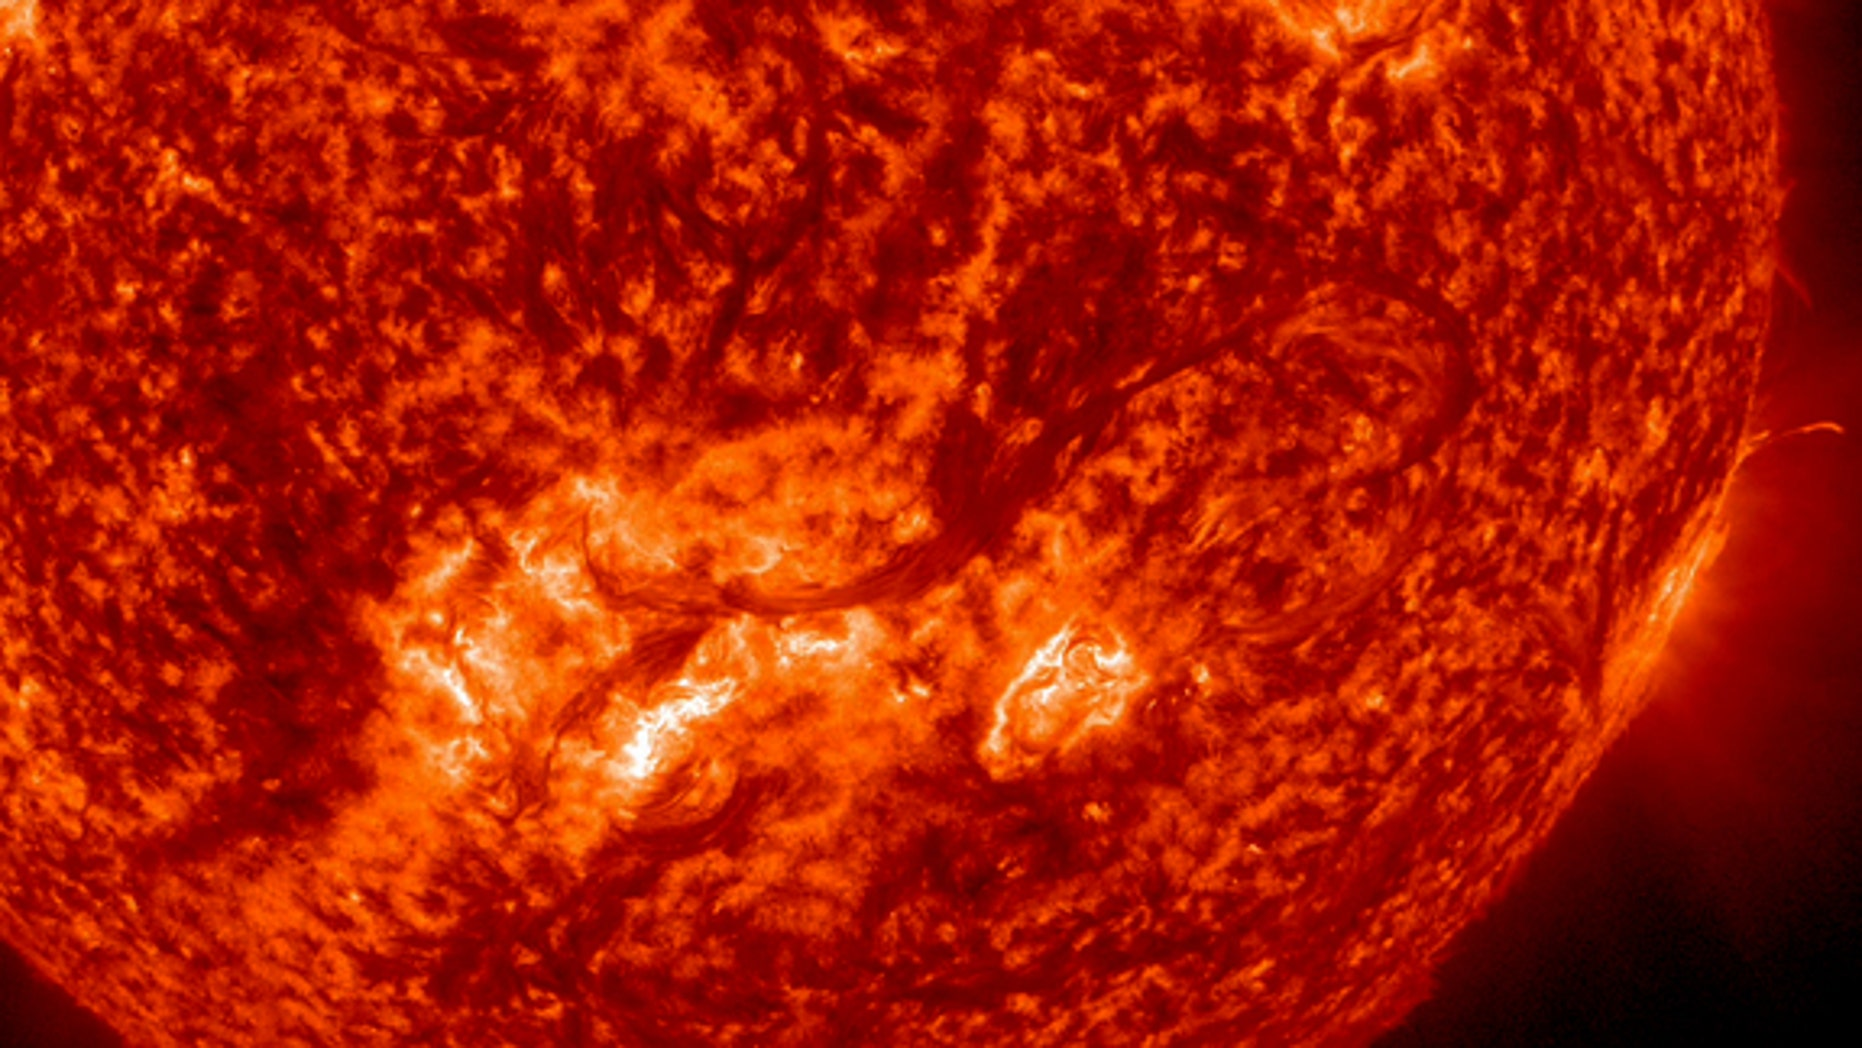 This image from NASA's Solar Dynamics Observatory (SDO) shows a long, whip-like solar filament extending over 500,000 miles in a long arc above the sun's surface between Aug. 6-8, 2012